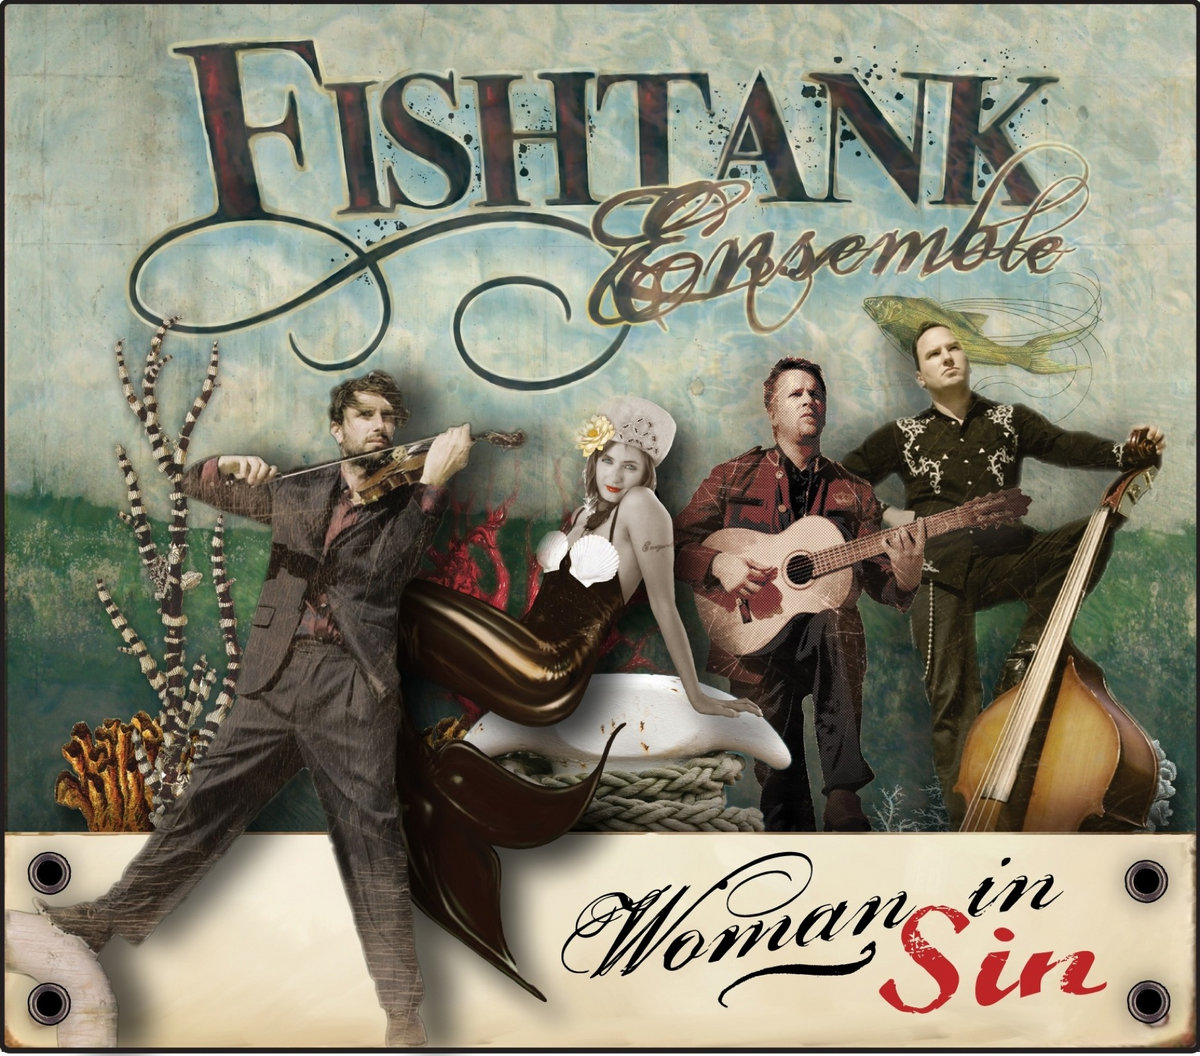 Fish tank ensemble - By Fishtank Ensemble